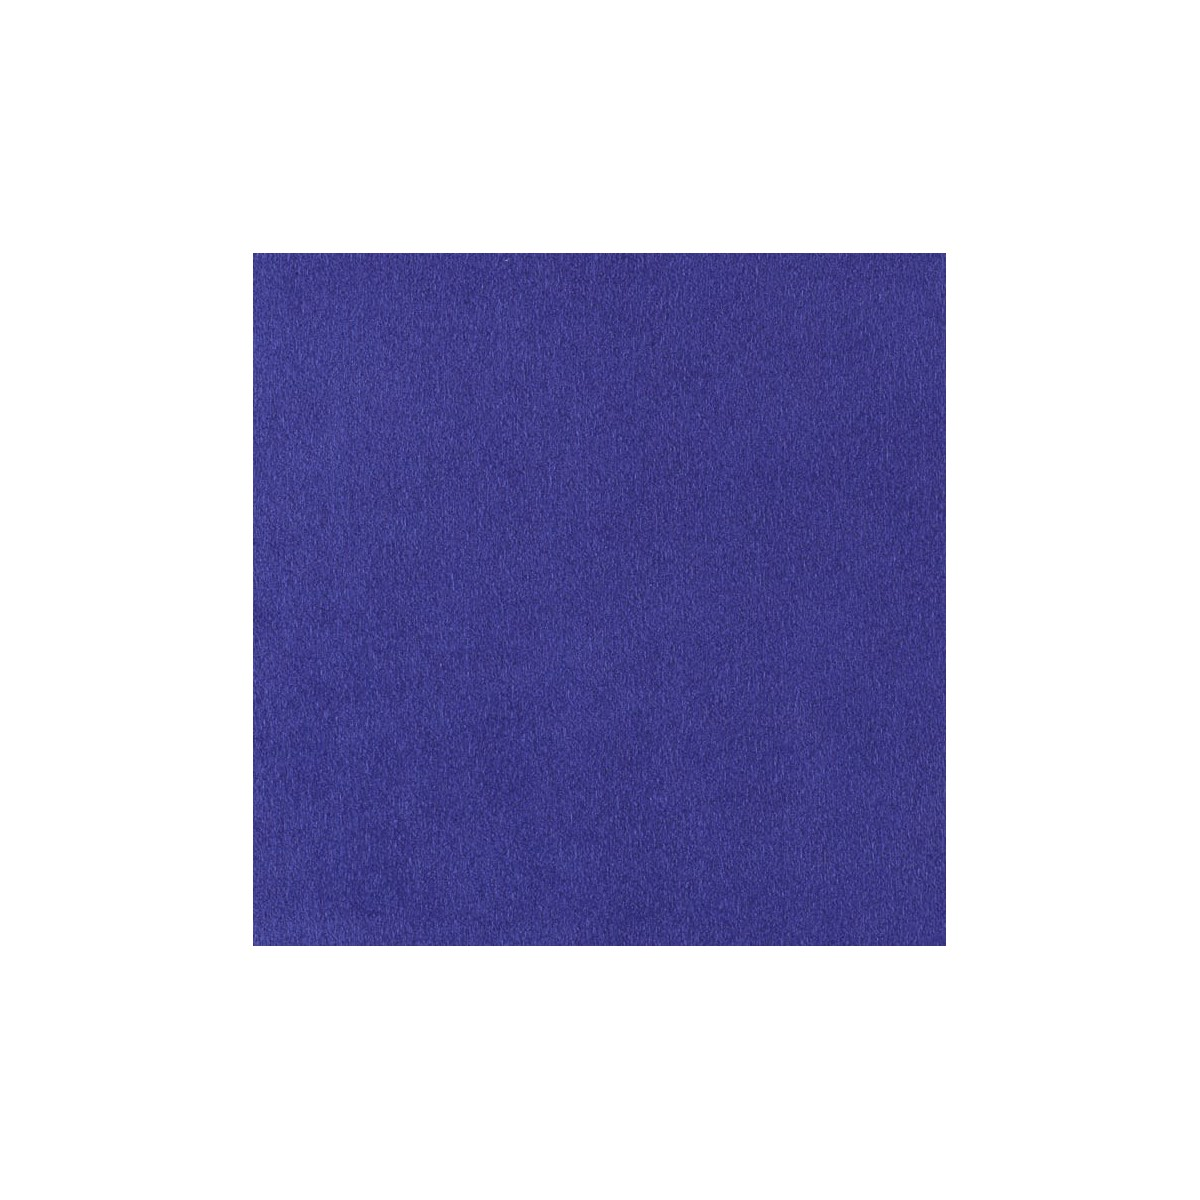 Ultrasuede ZODIAC 225 x 230 mm 1pz